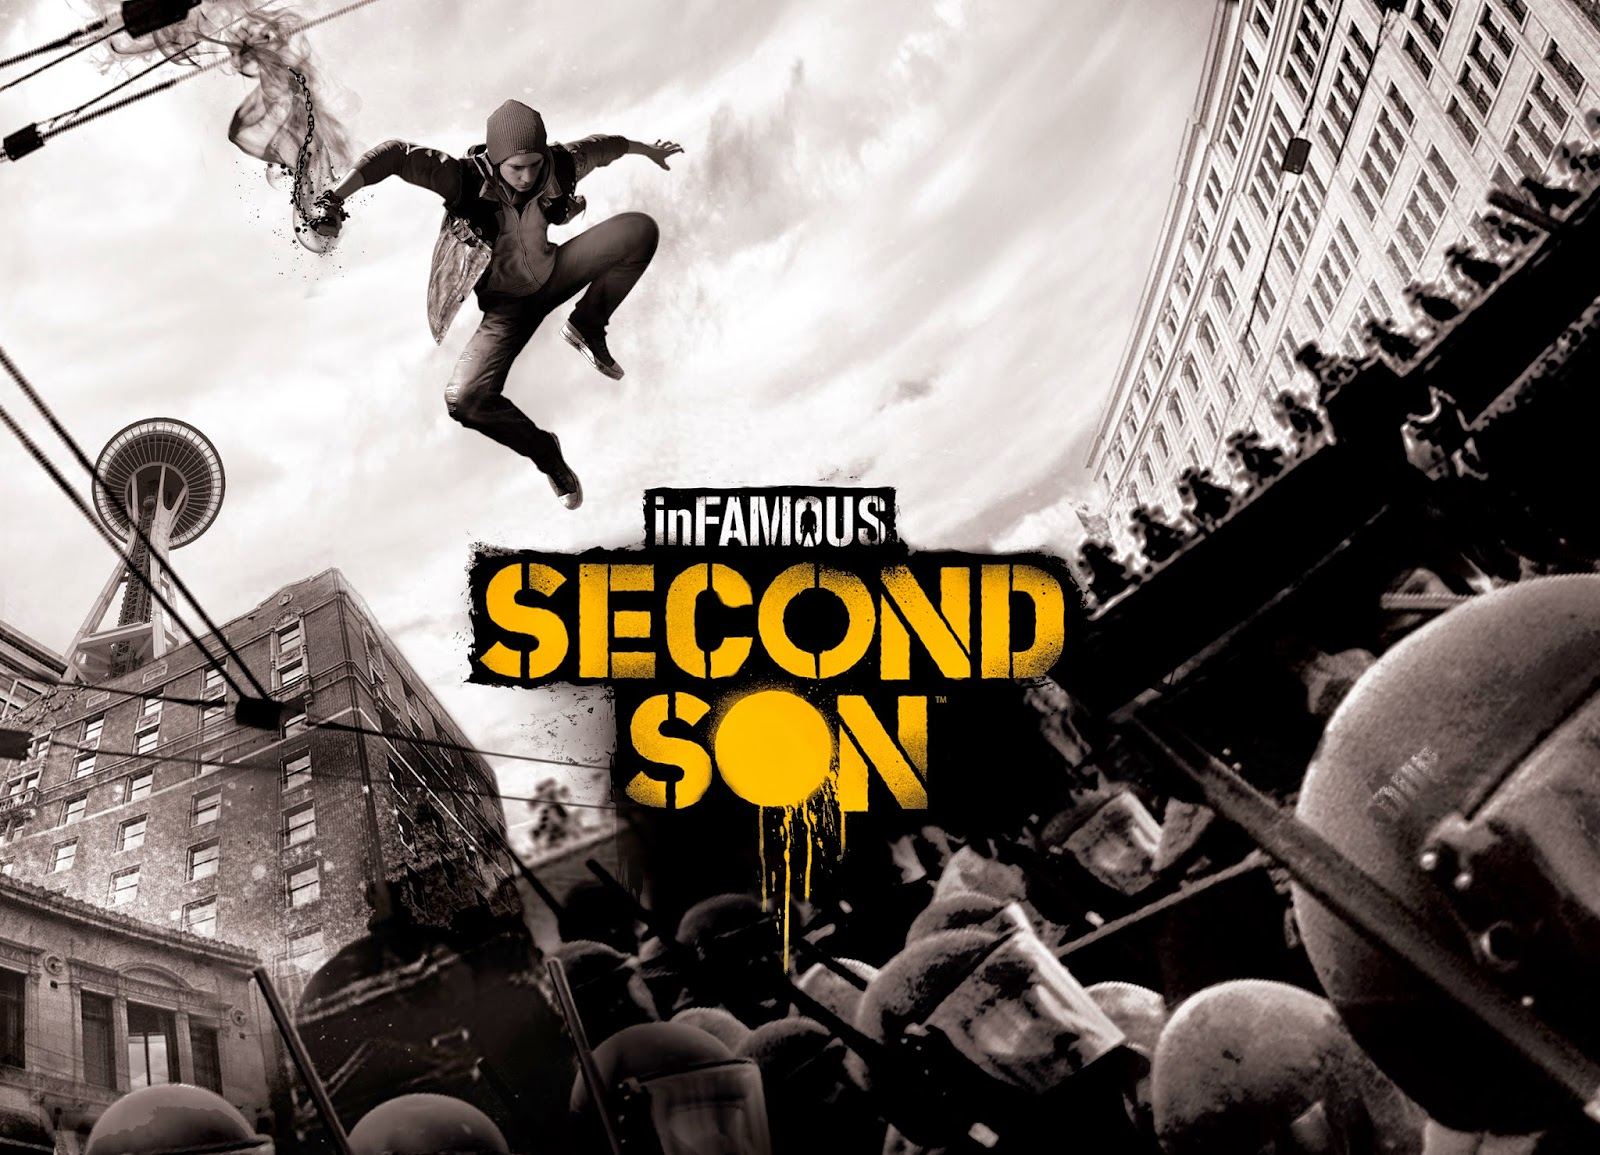 RATH'S REVIEWS: inFAMOUS Second Son